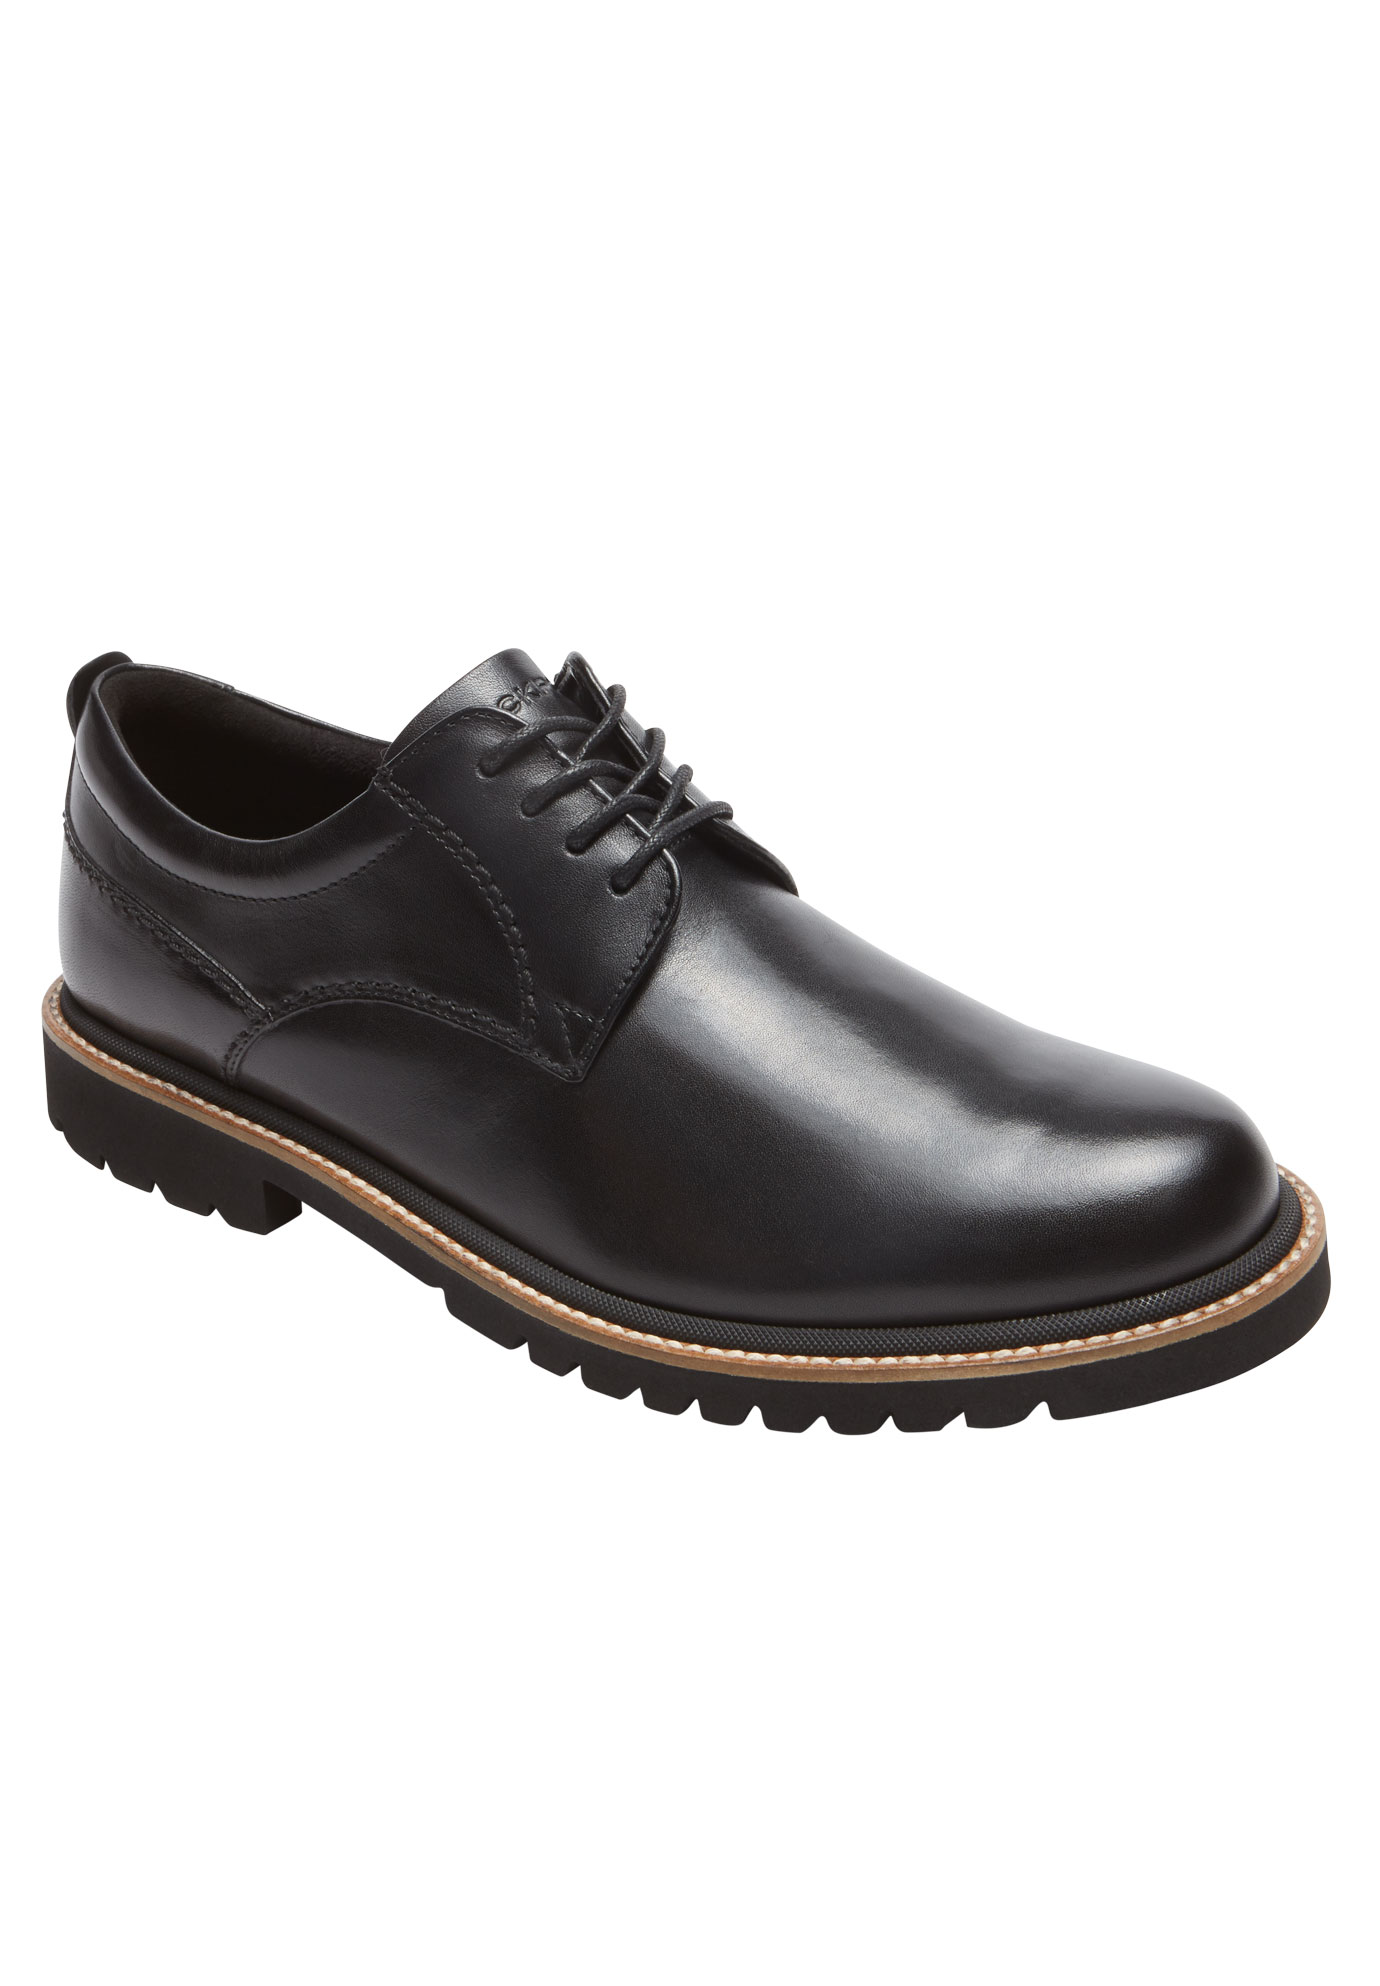 Rockport® Marshall Plain Toe Oxfords,